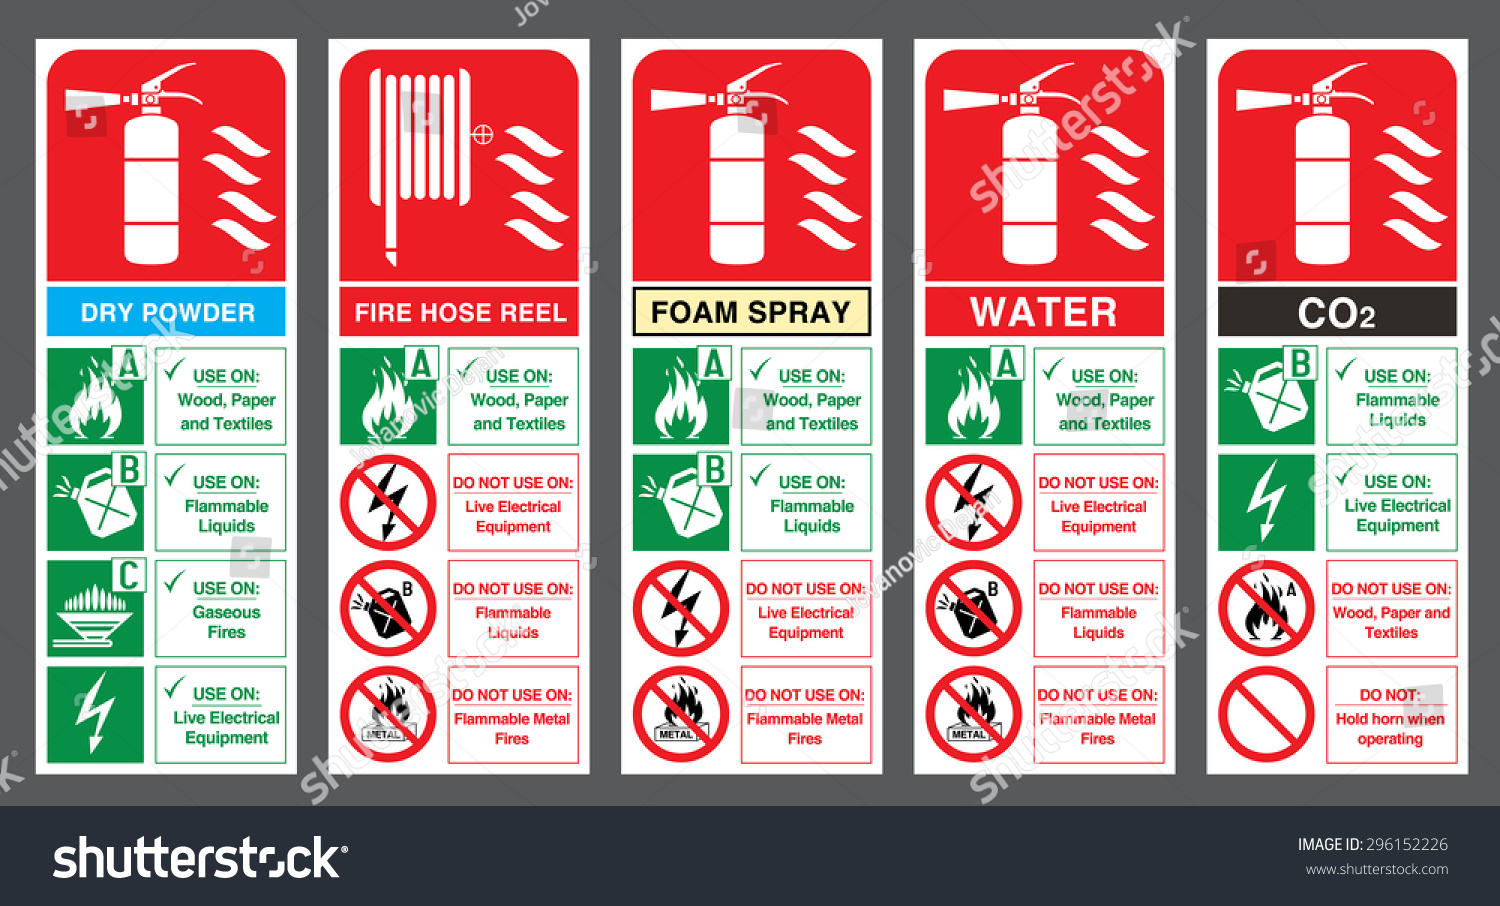 Royalty-free Set of safety labels. Fire extinguisher… #296152226 ...